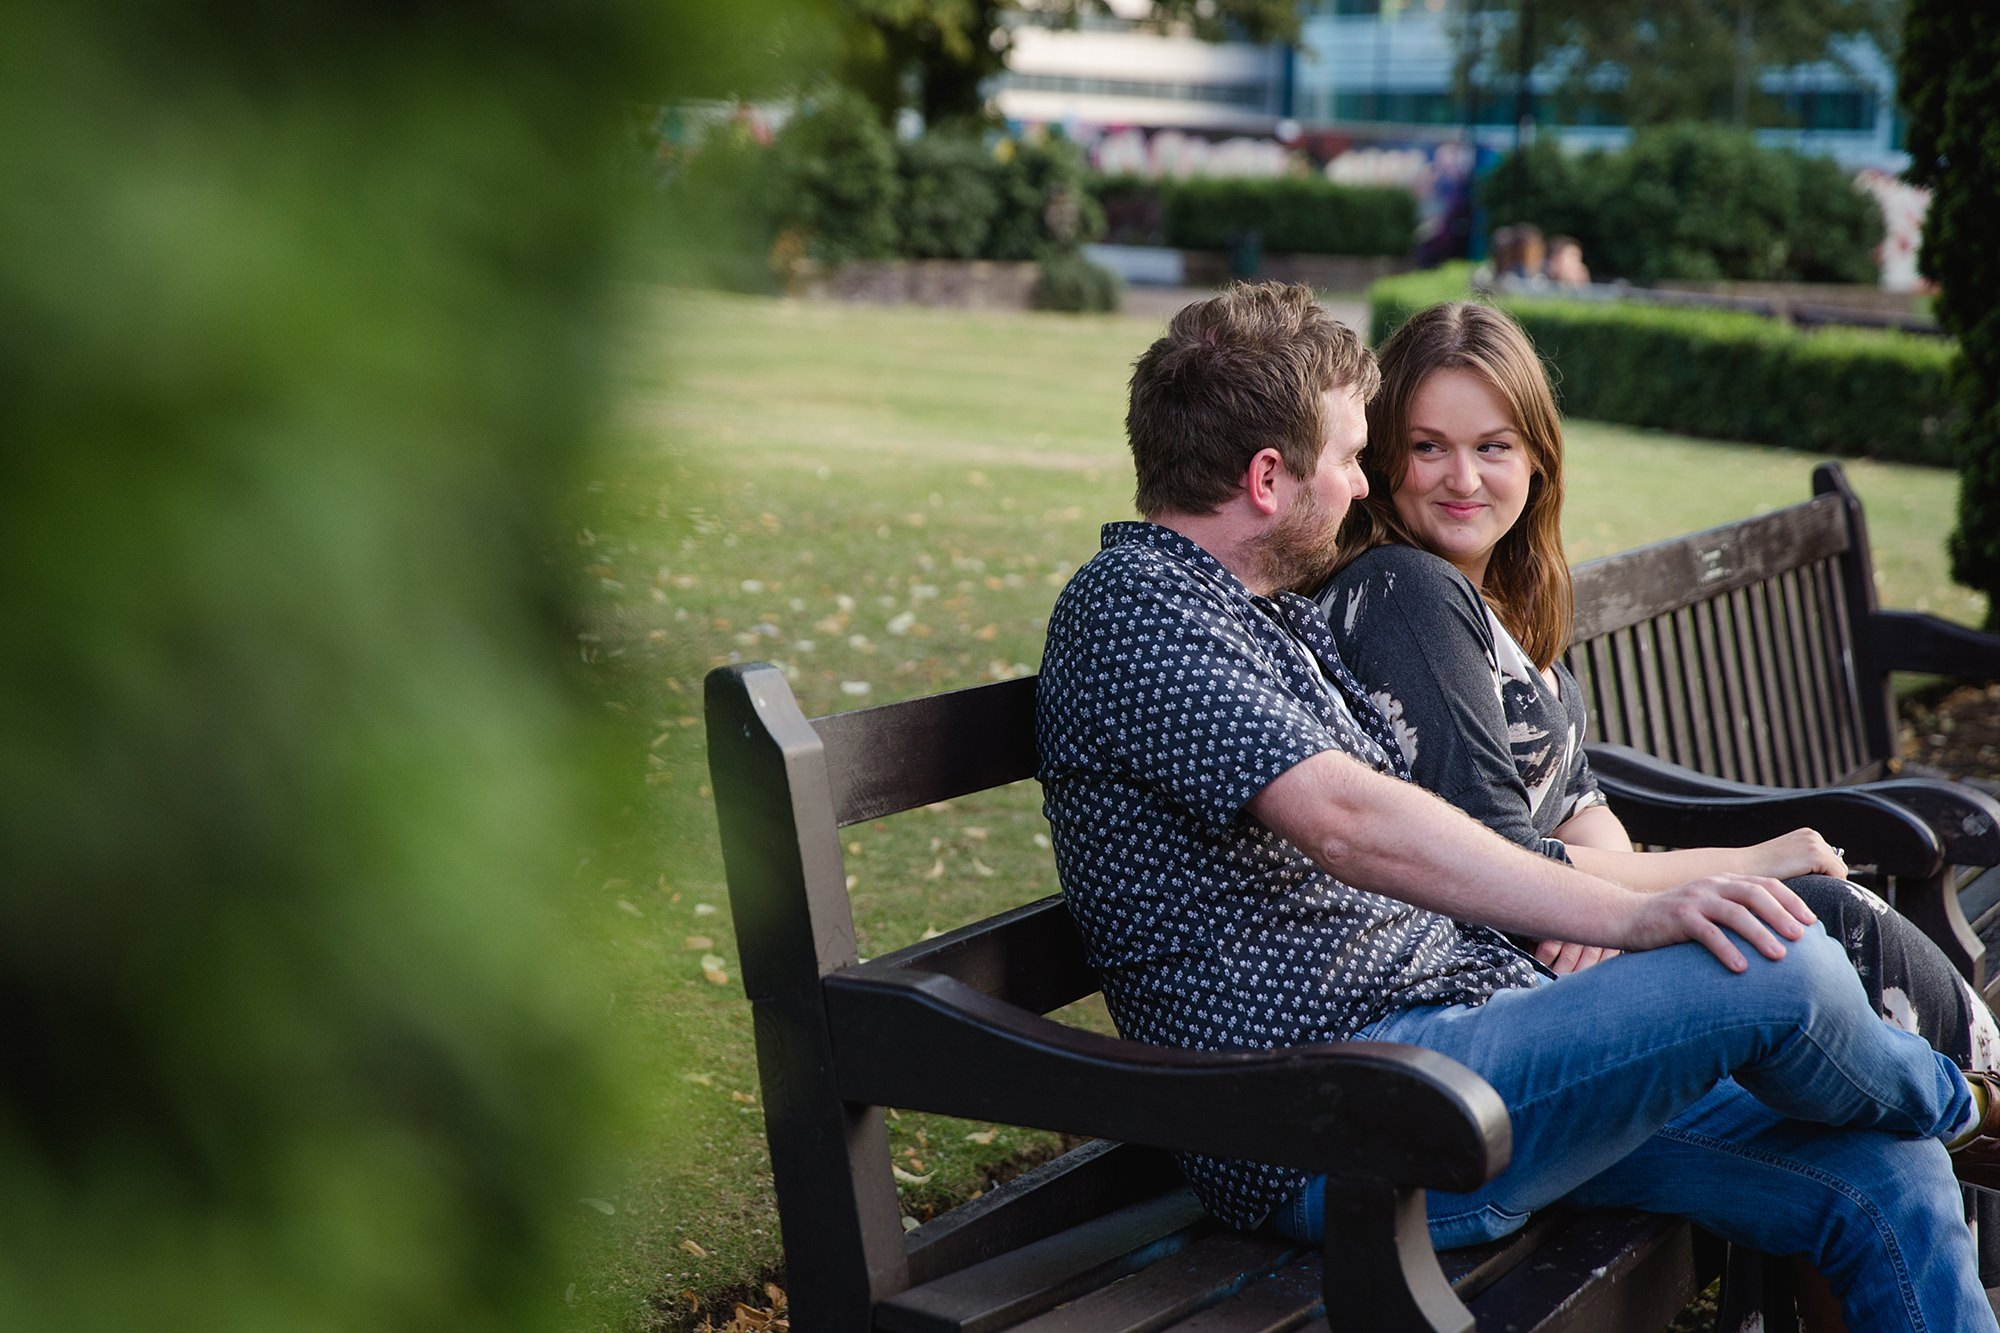 Croydon engagement photography - a couple sits together on a bench